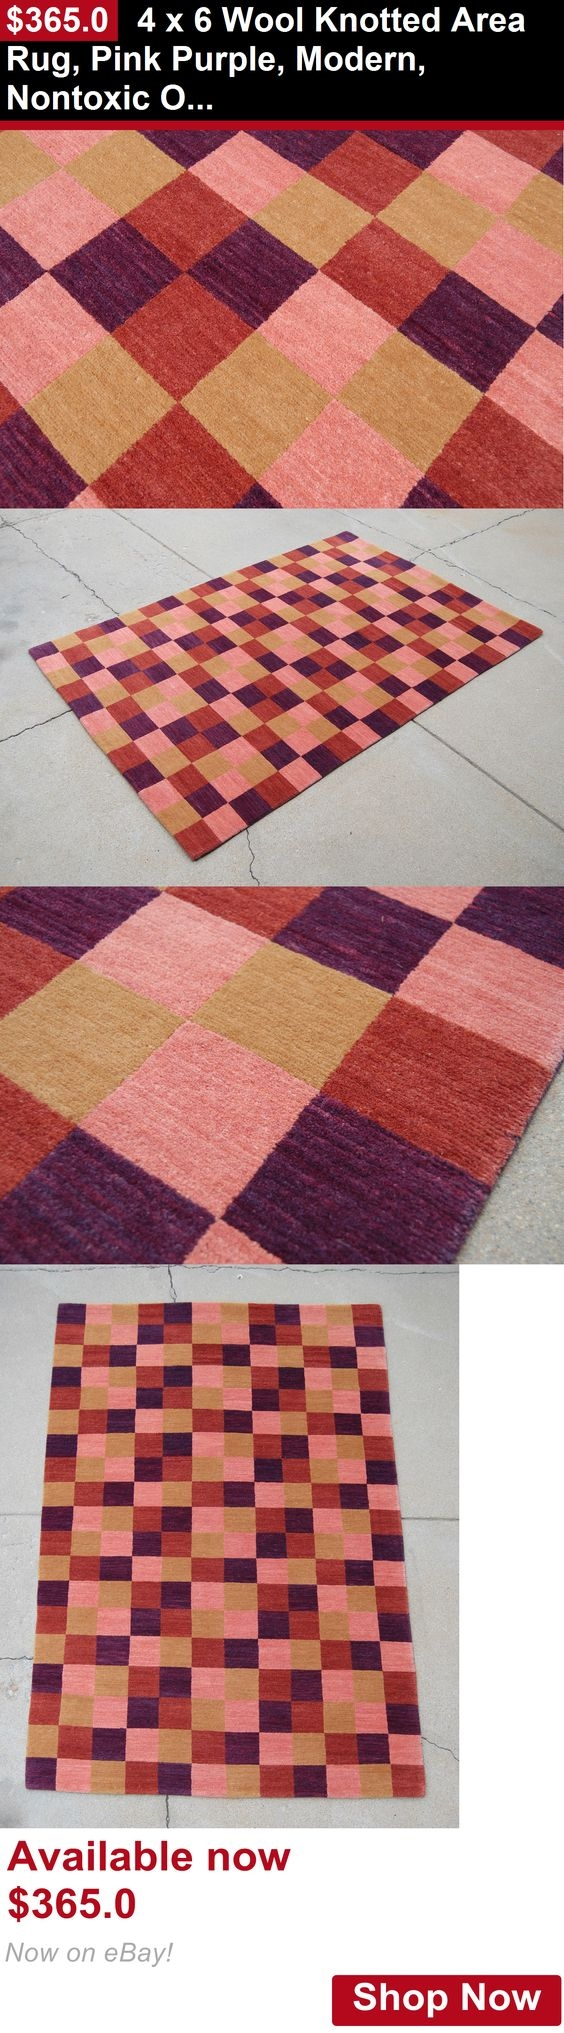 Ba Mats And Rugs 4 X 6 Wool Knotted Area Rug Pink Purple For Non Toxic Wool Area Rugs (#2 of 15)